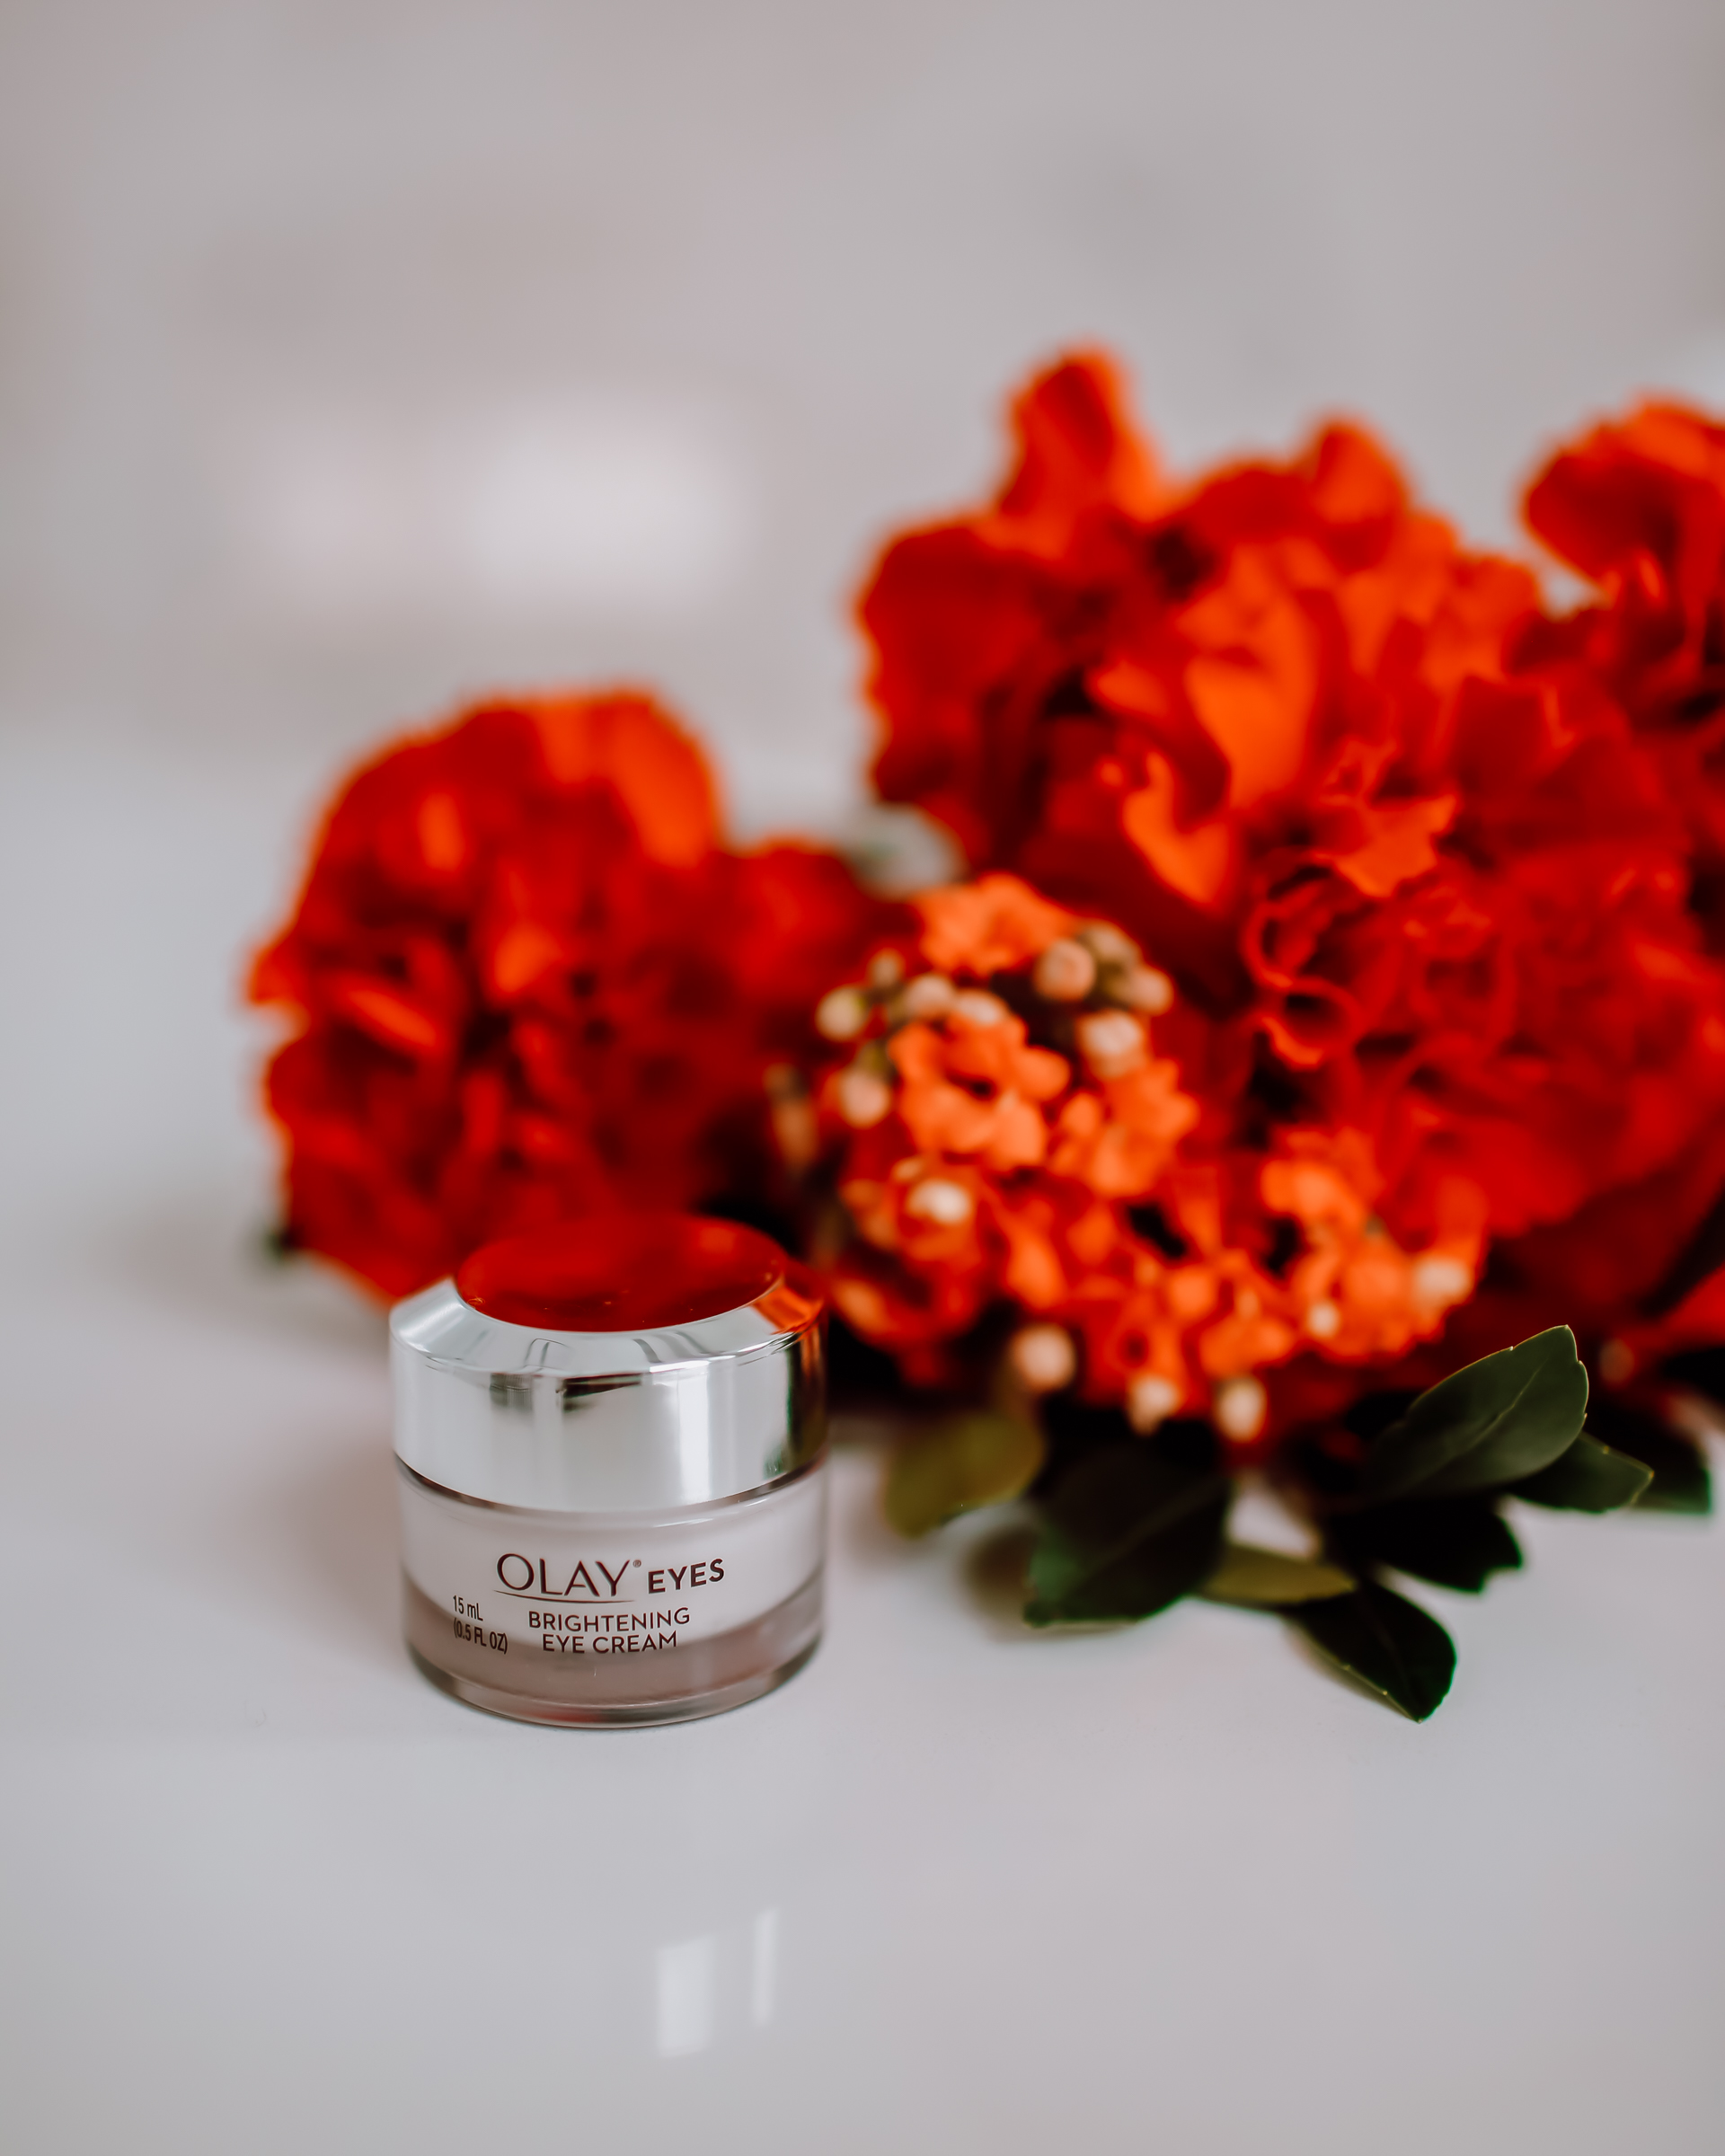 How To Get Rid Of Dark Circles Olay Brightening Eye Cream